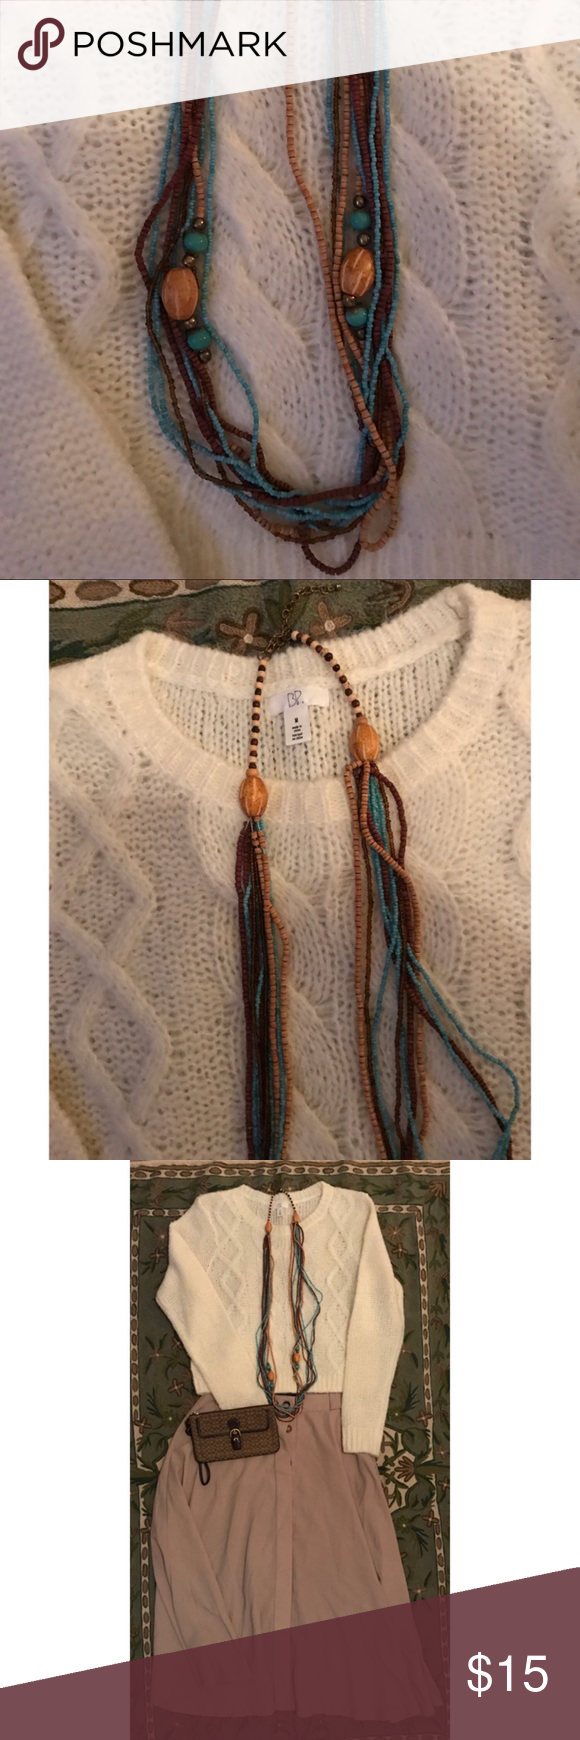 Anthropologie Necklace Layered boho necklace Anthropologie Jewelry Necklaces